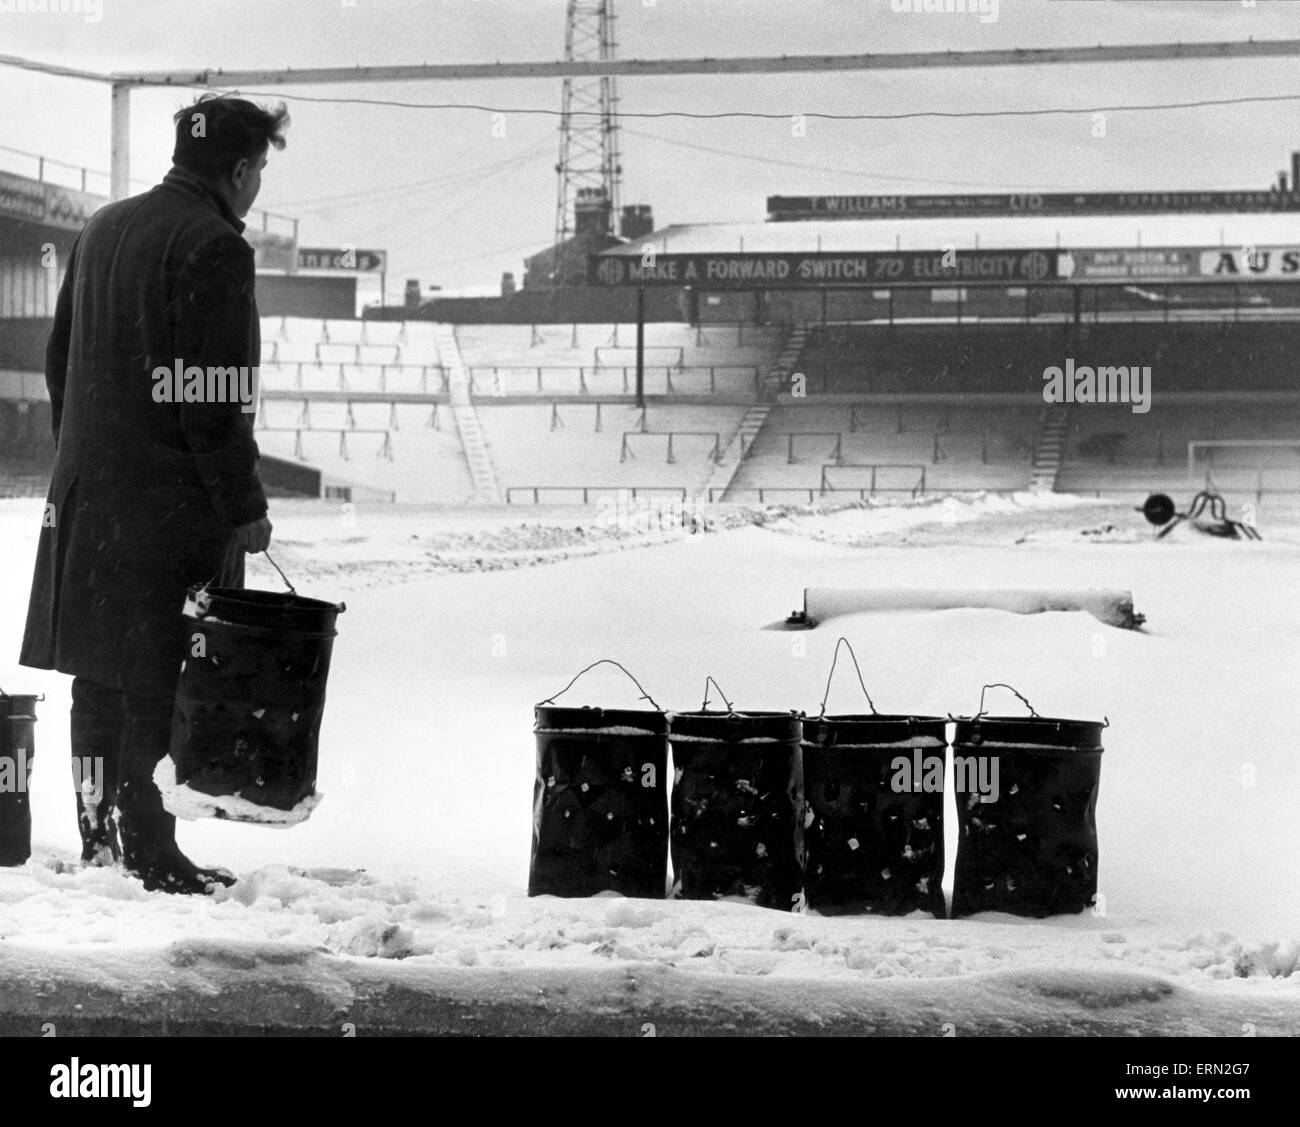 Birmingham City ground St Andrews pitch covered in snow, January 1963. - Stock Image